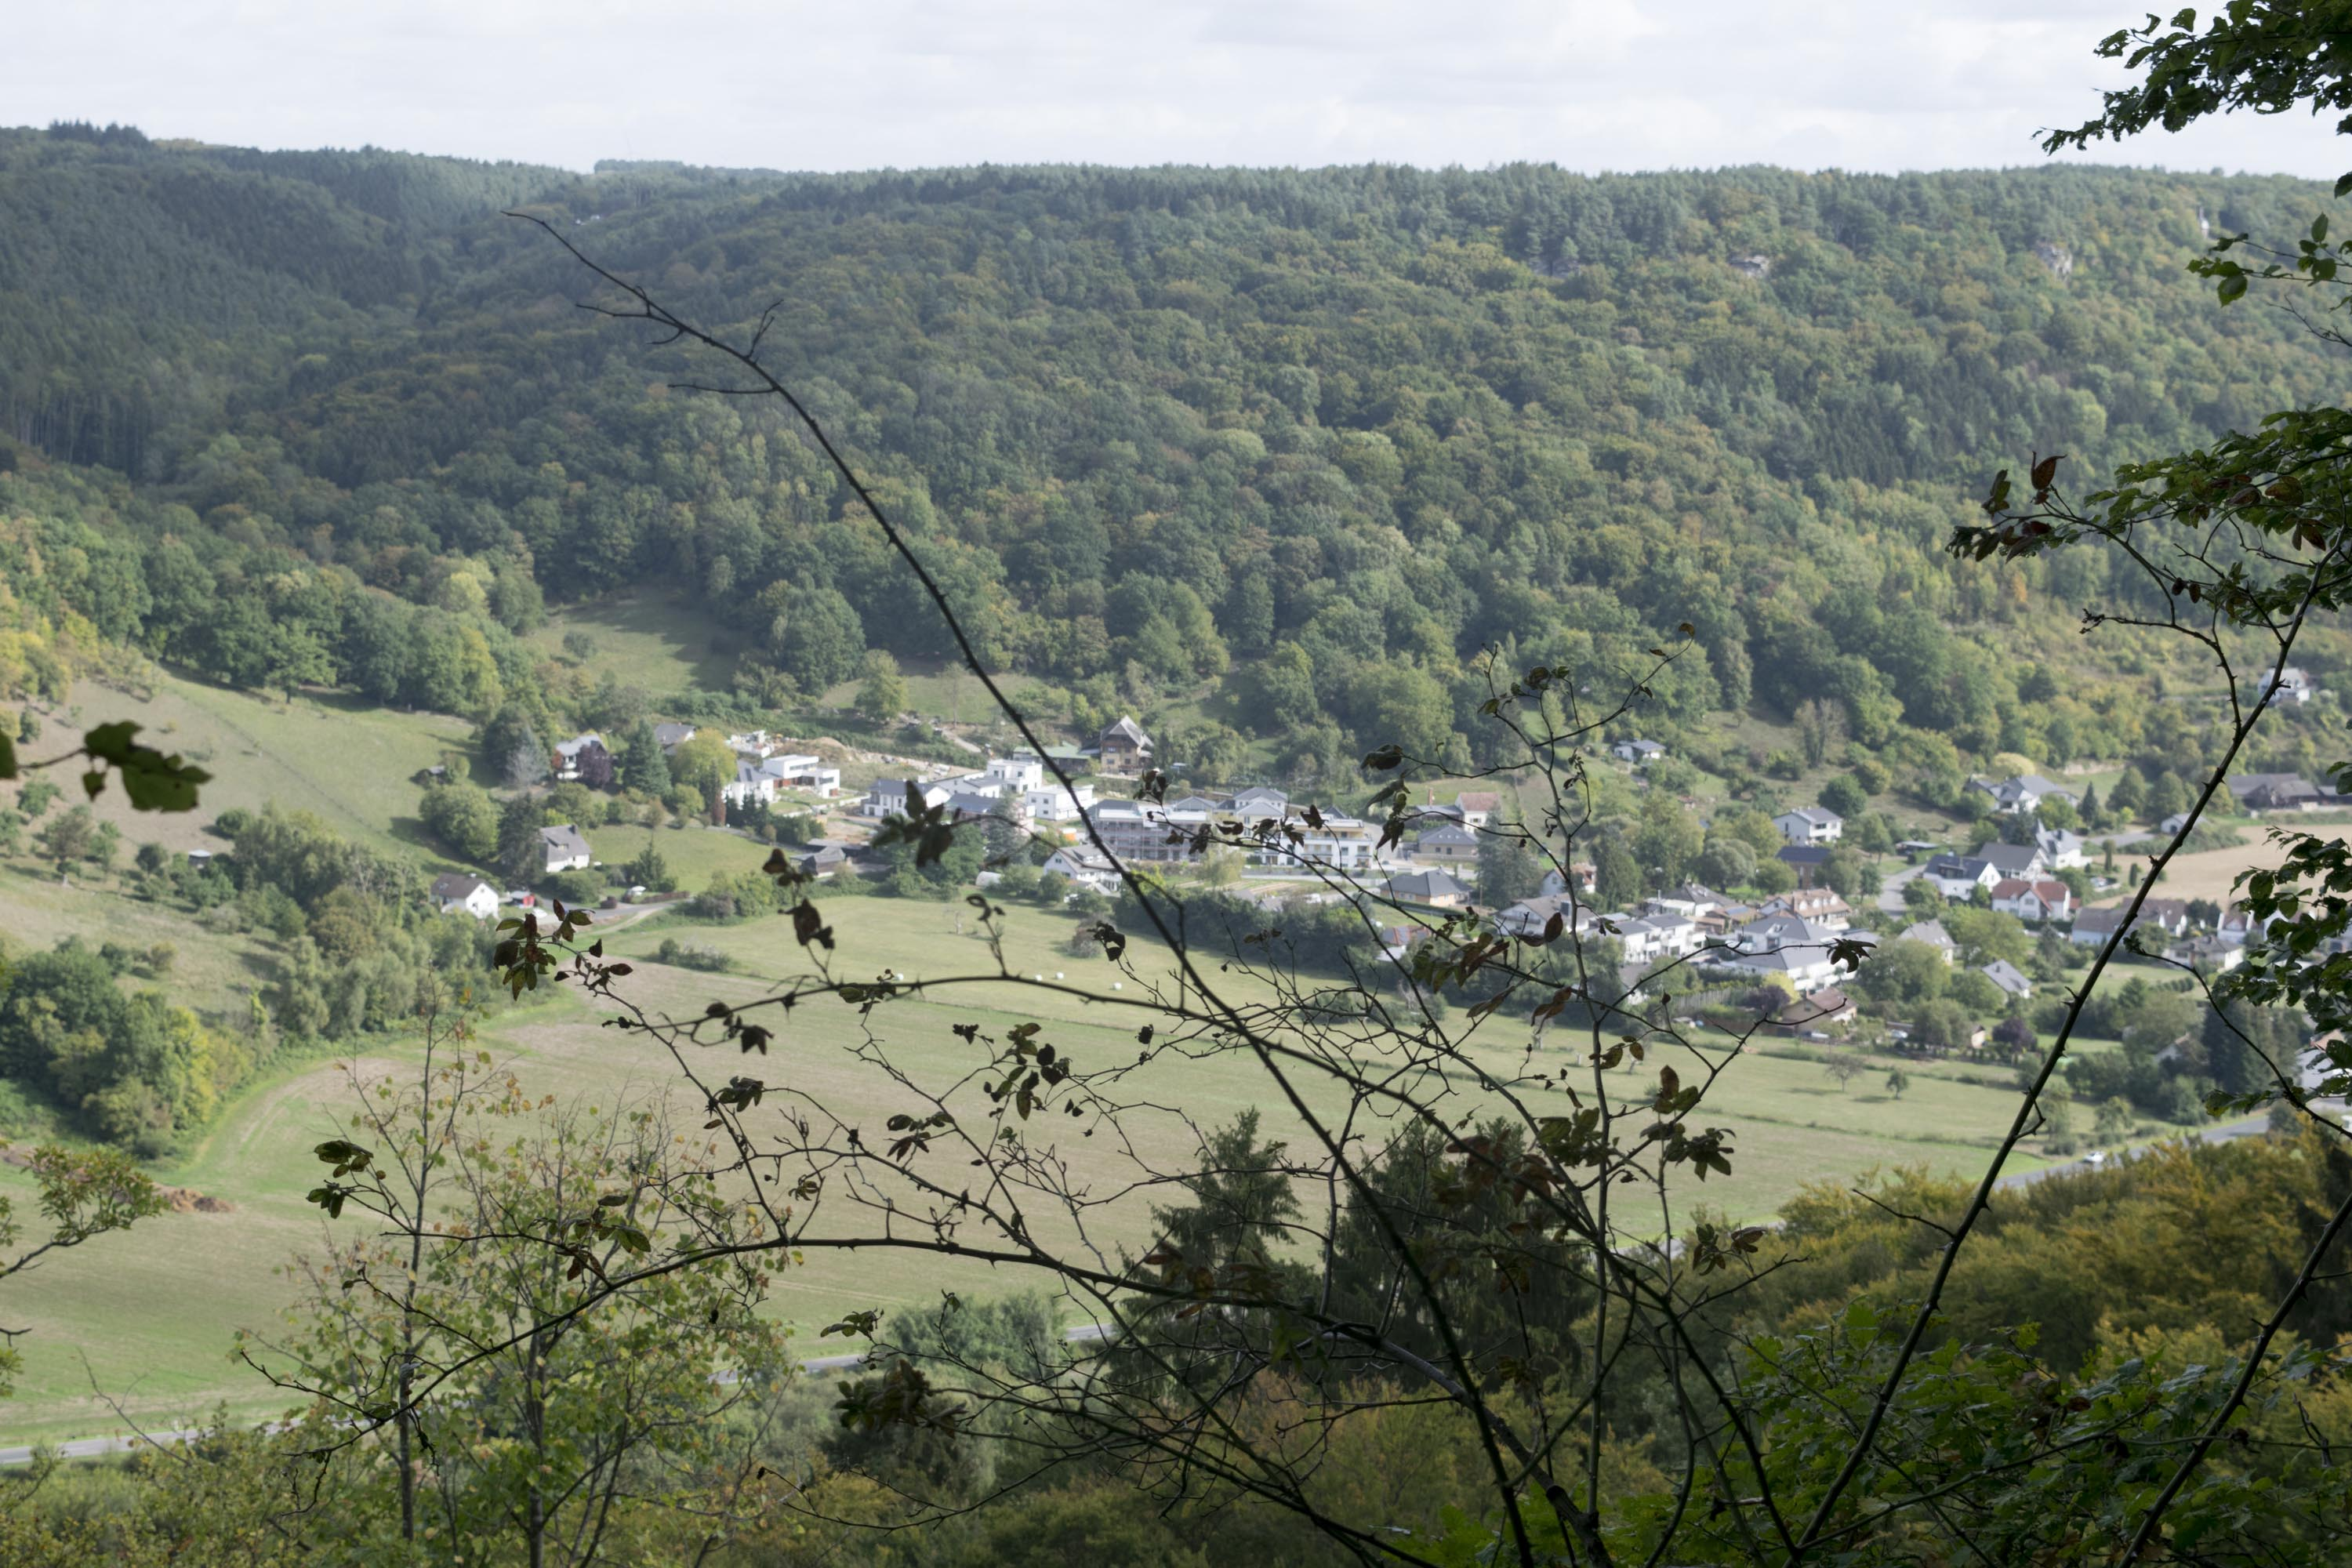 View from Mullerthal trail